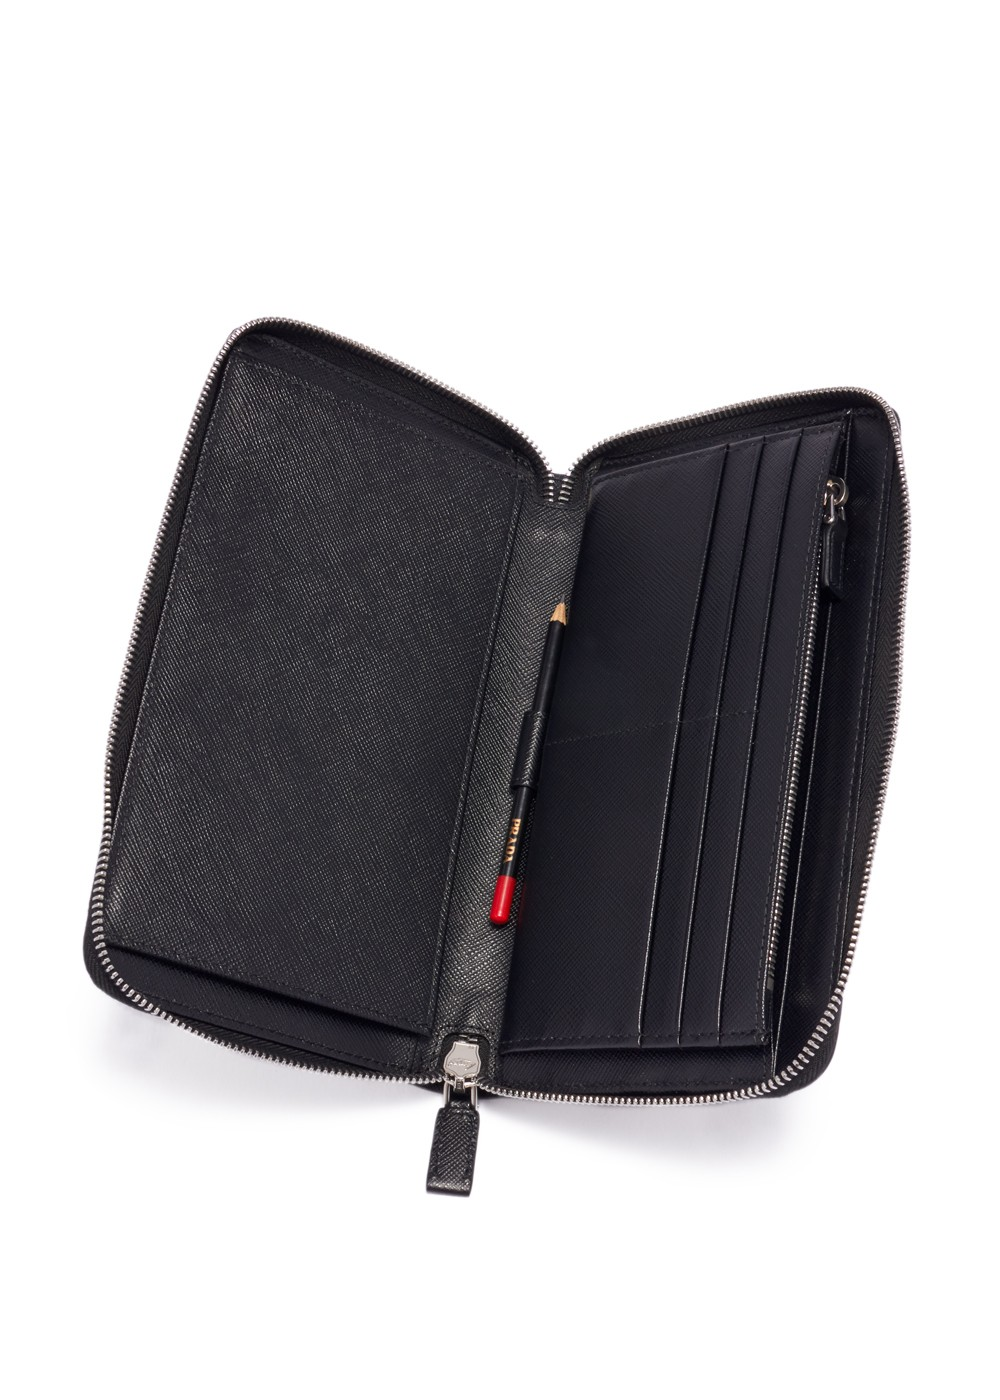 【最大36%OFF】DOCUMENT HOLDER|NERO|カードケース|PRADA - wallet and more